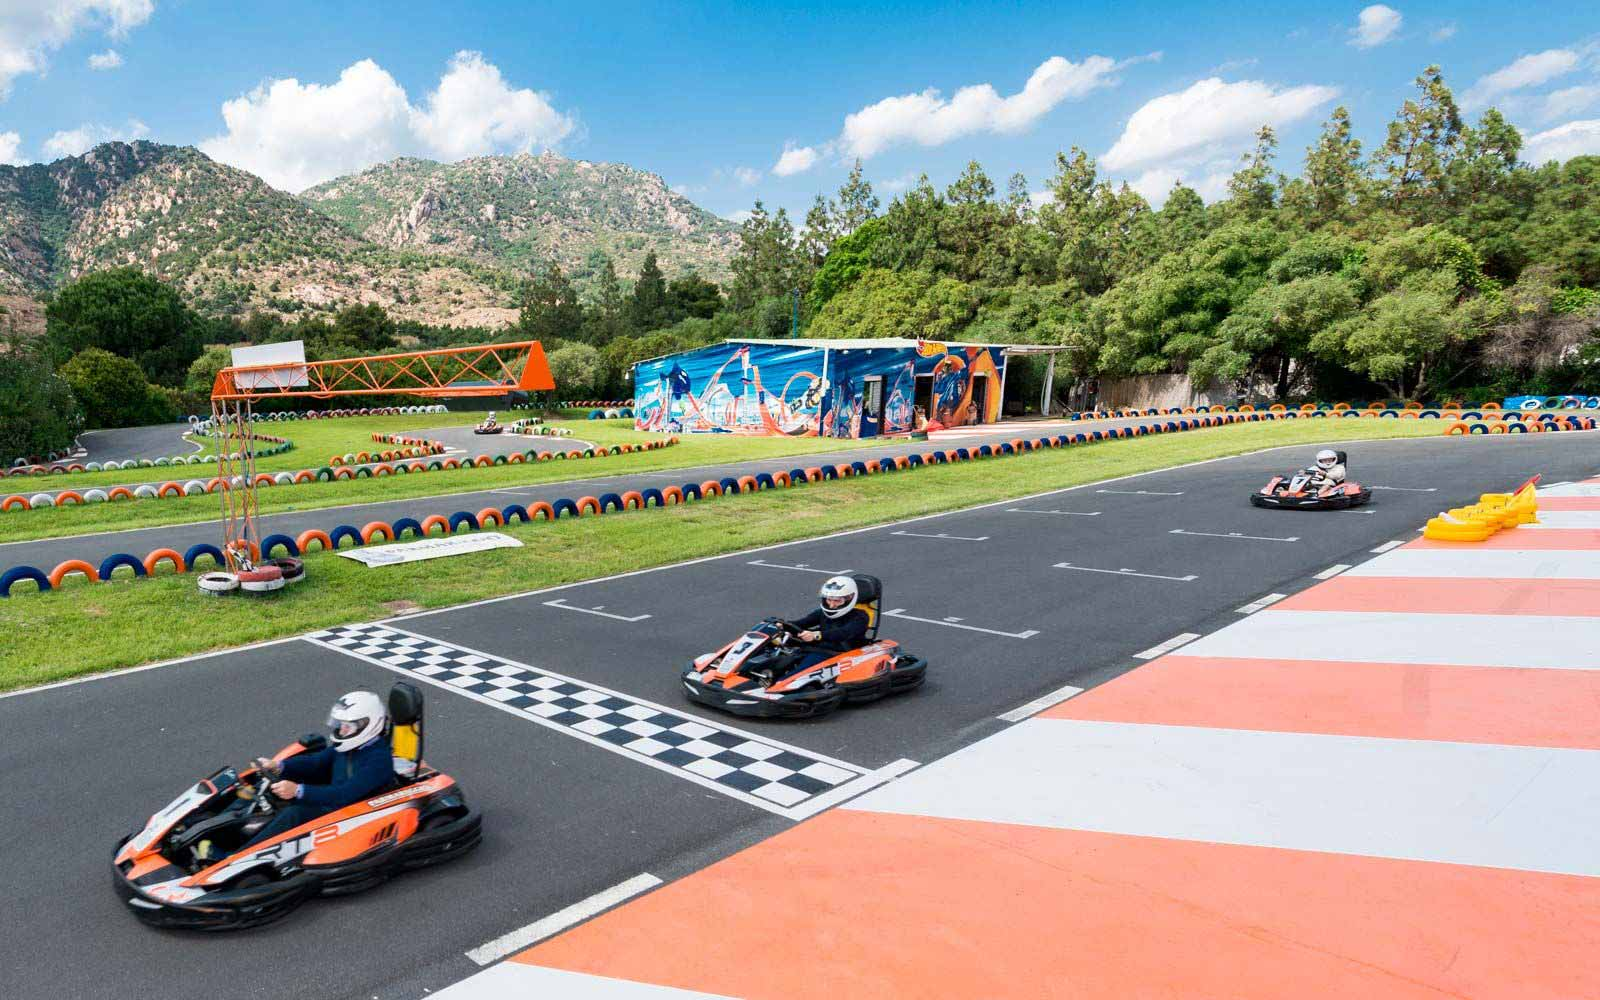 Go-karting at the Forte Village Resort